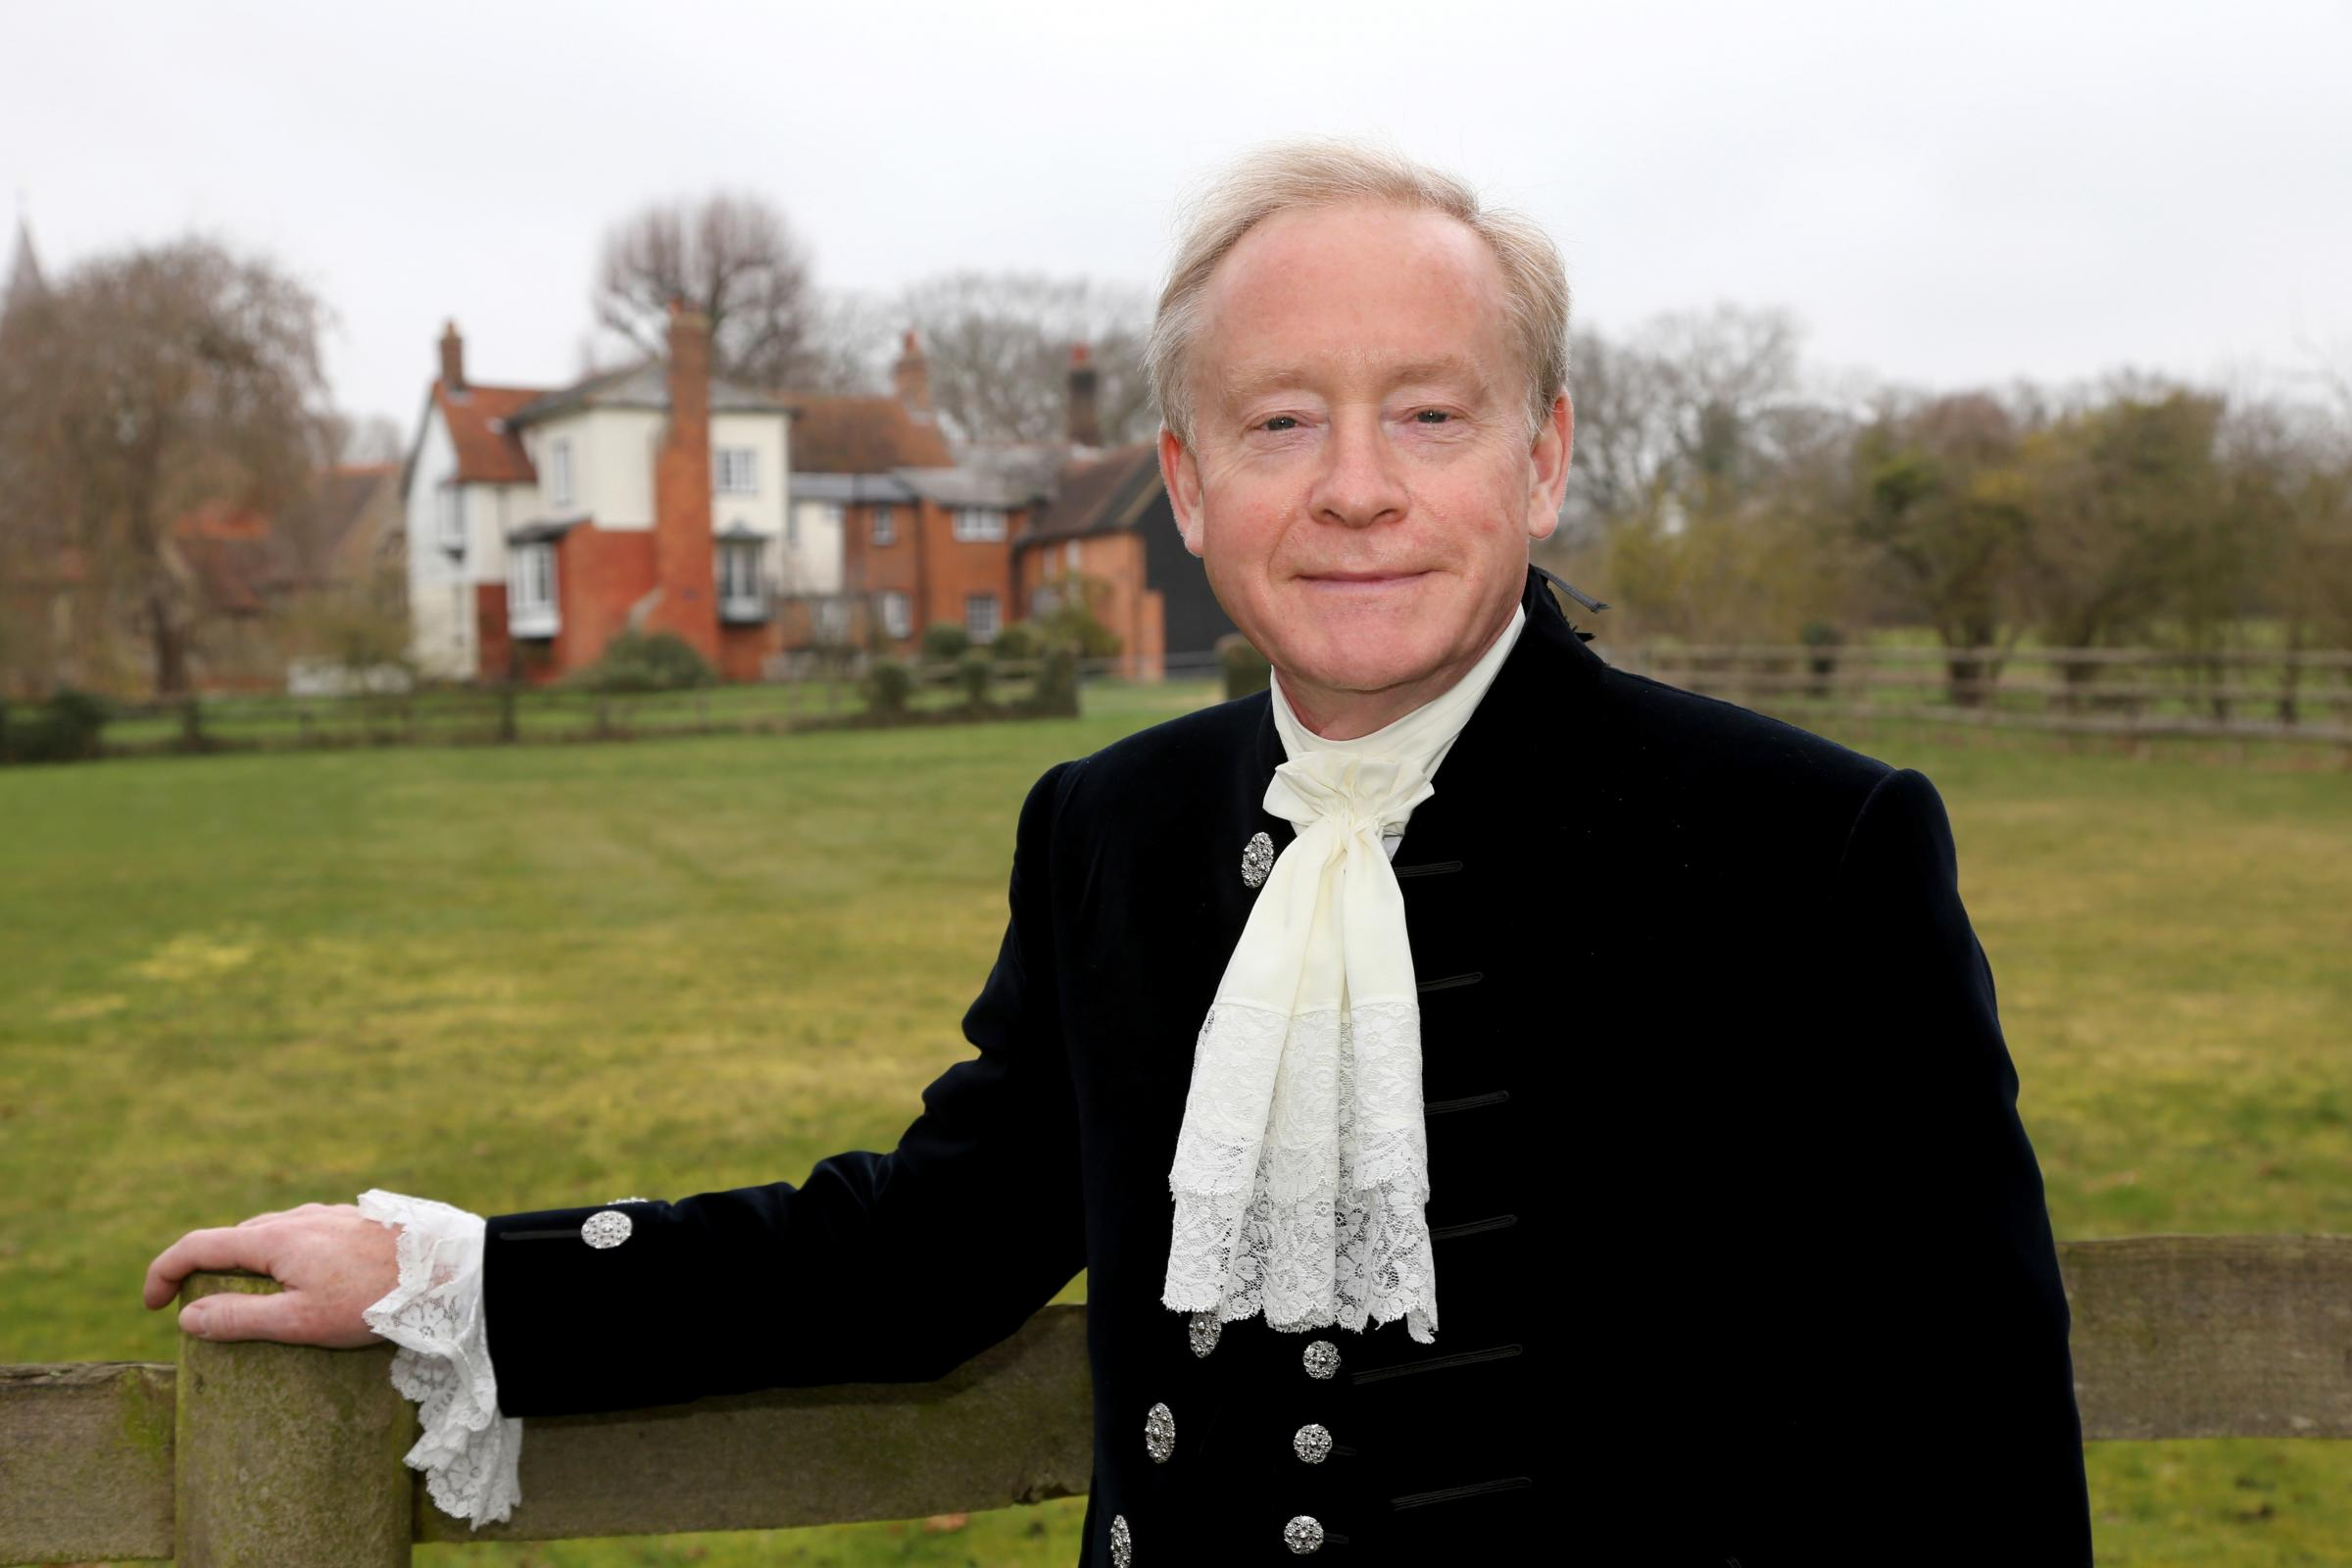 Dr James Bettley JP DL FSA is the 839th High Sheriff of Essex (landscape)